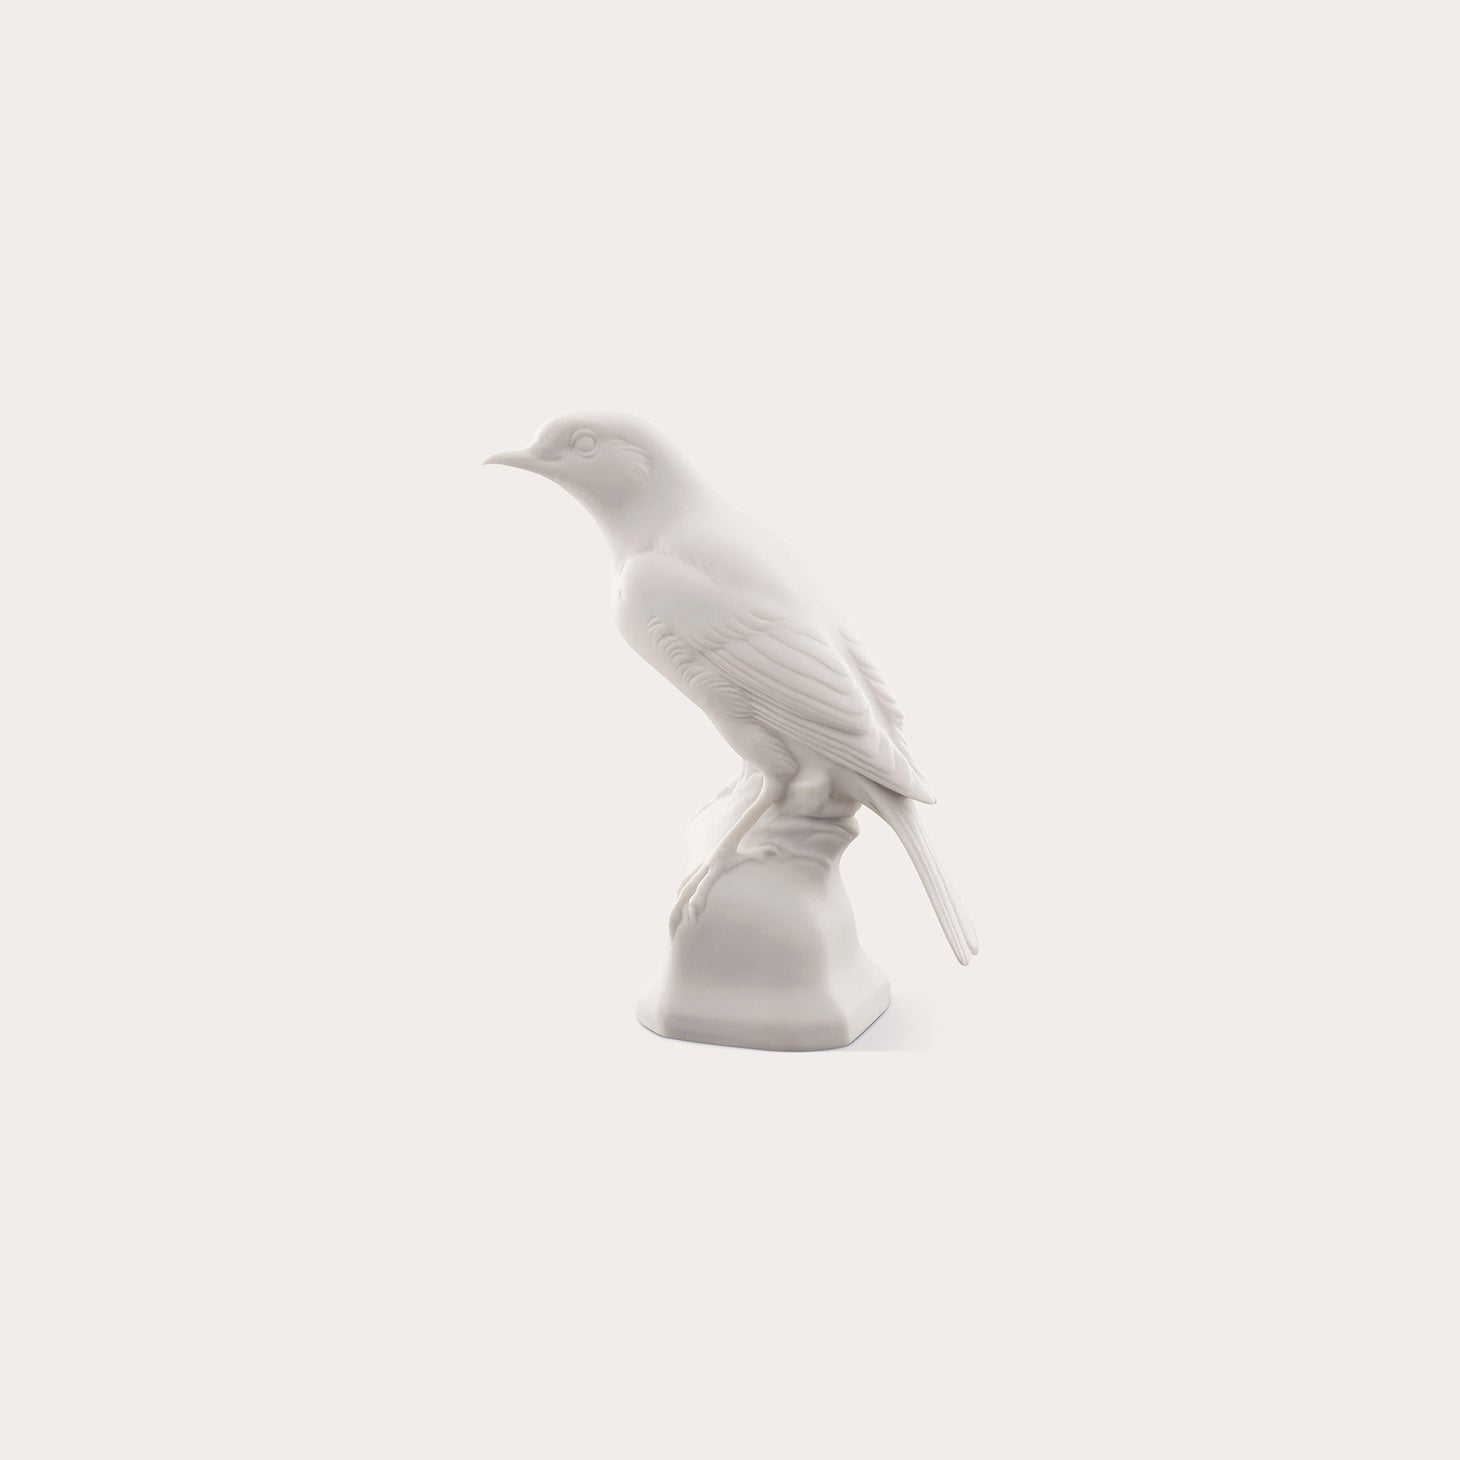 Birds-Garden Redstart Accessories Nymphenburg Designer Furniture Sku: 542-100-10001